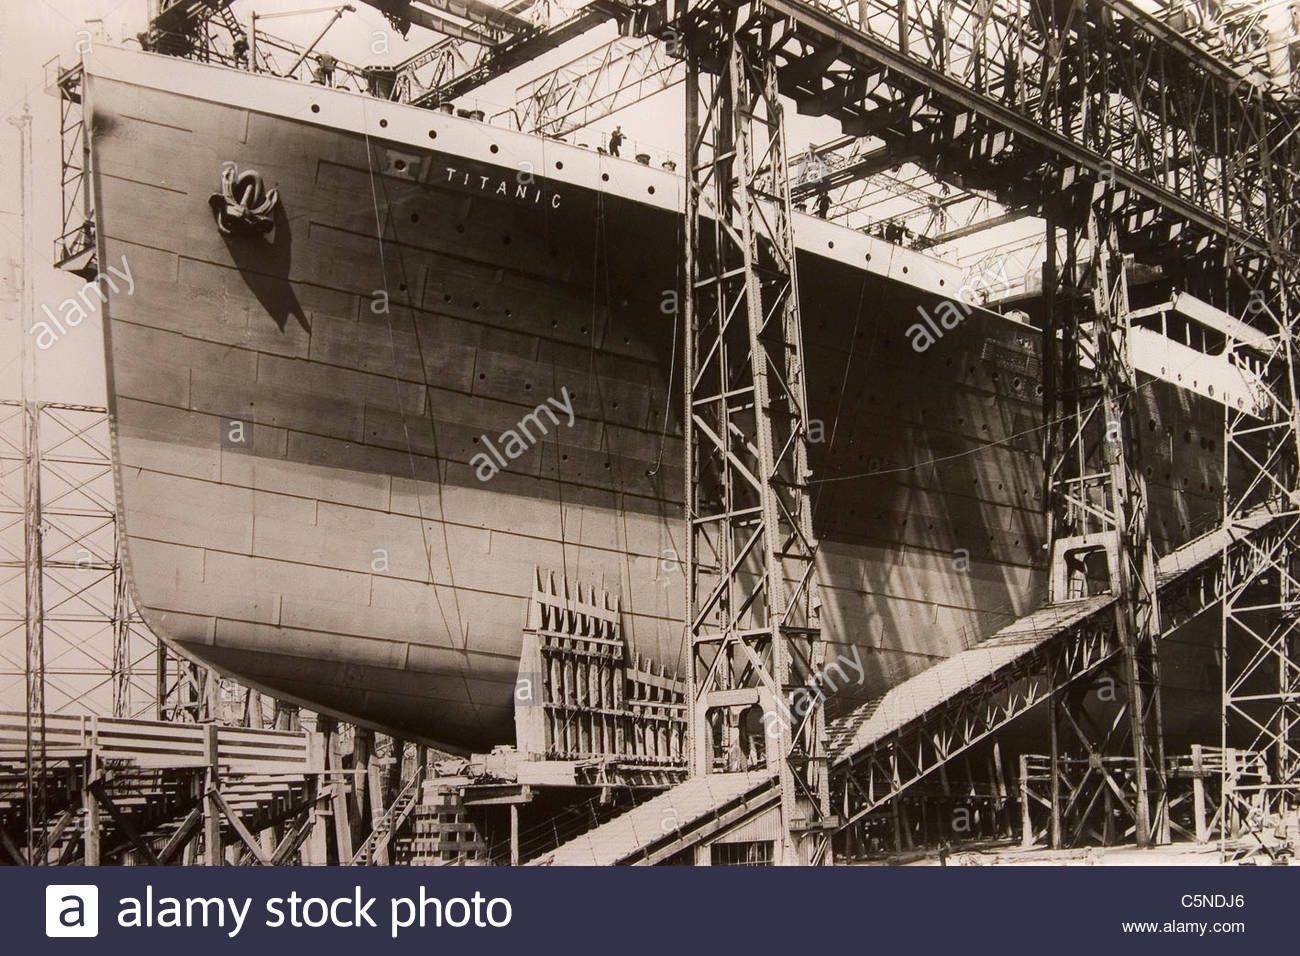 europe, northern ireland, belfast, ulster folk and transport museum, historical picture of the titanic - Stock Image